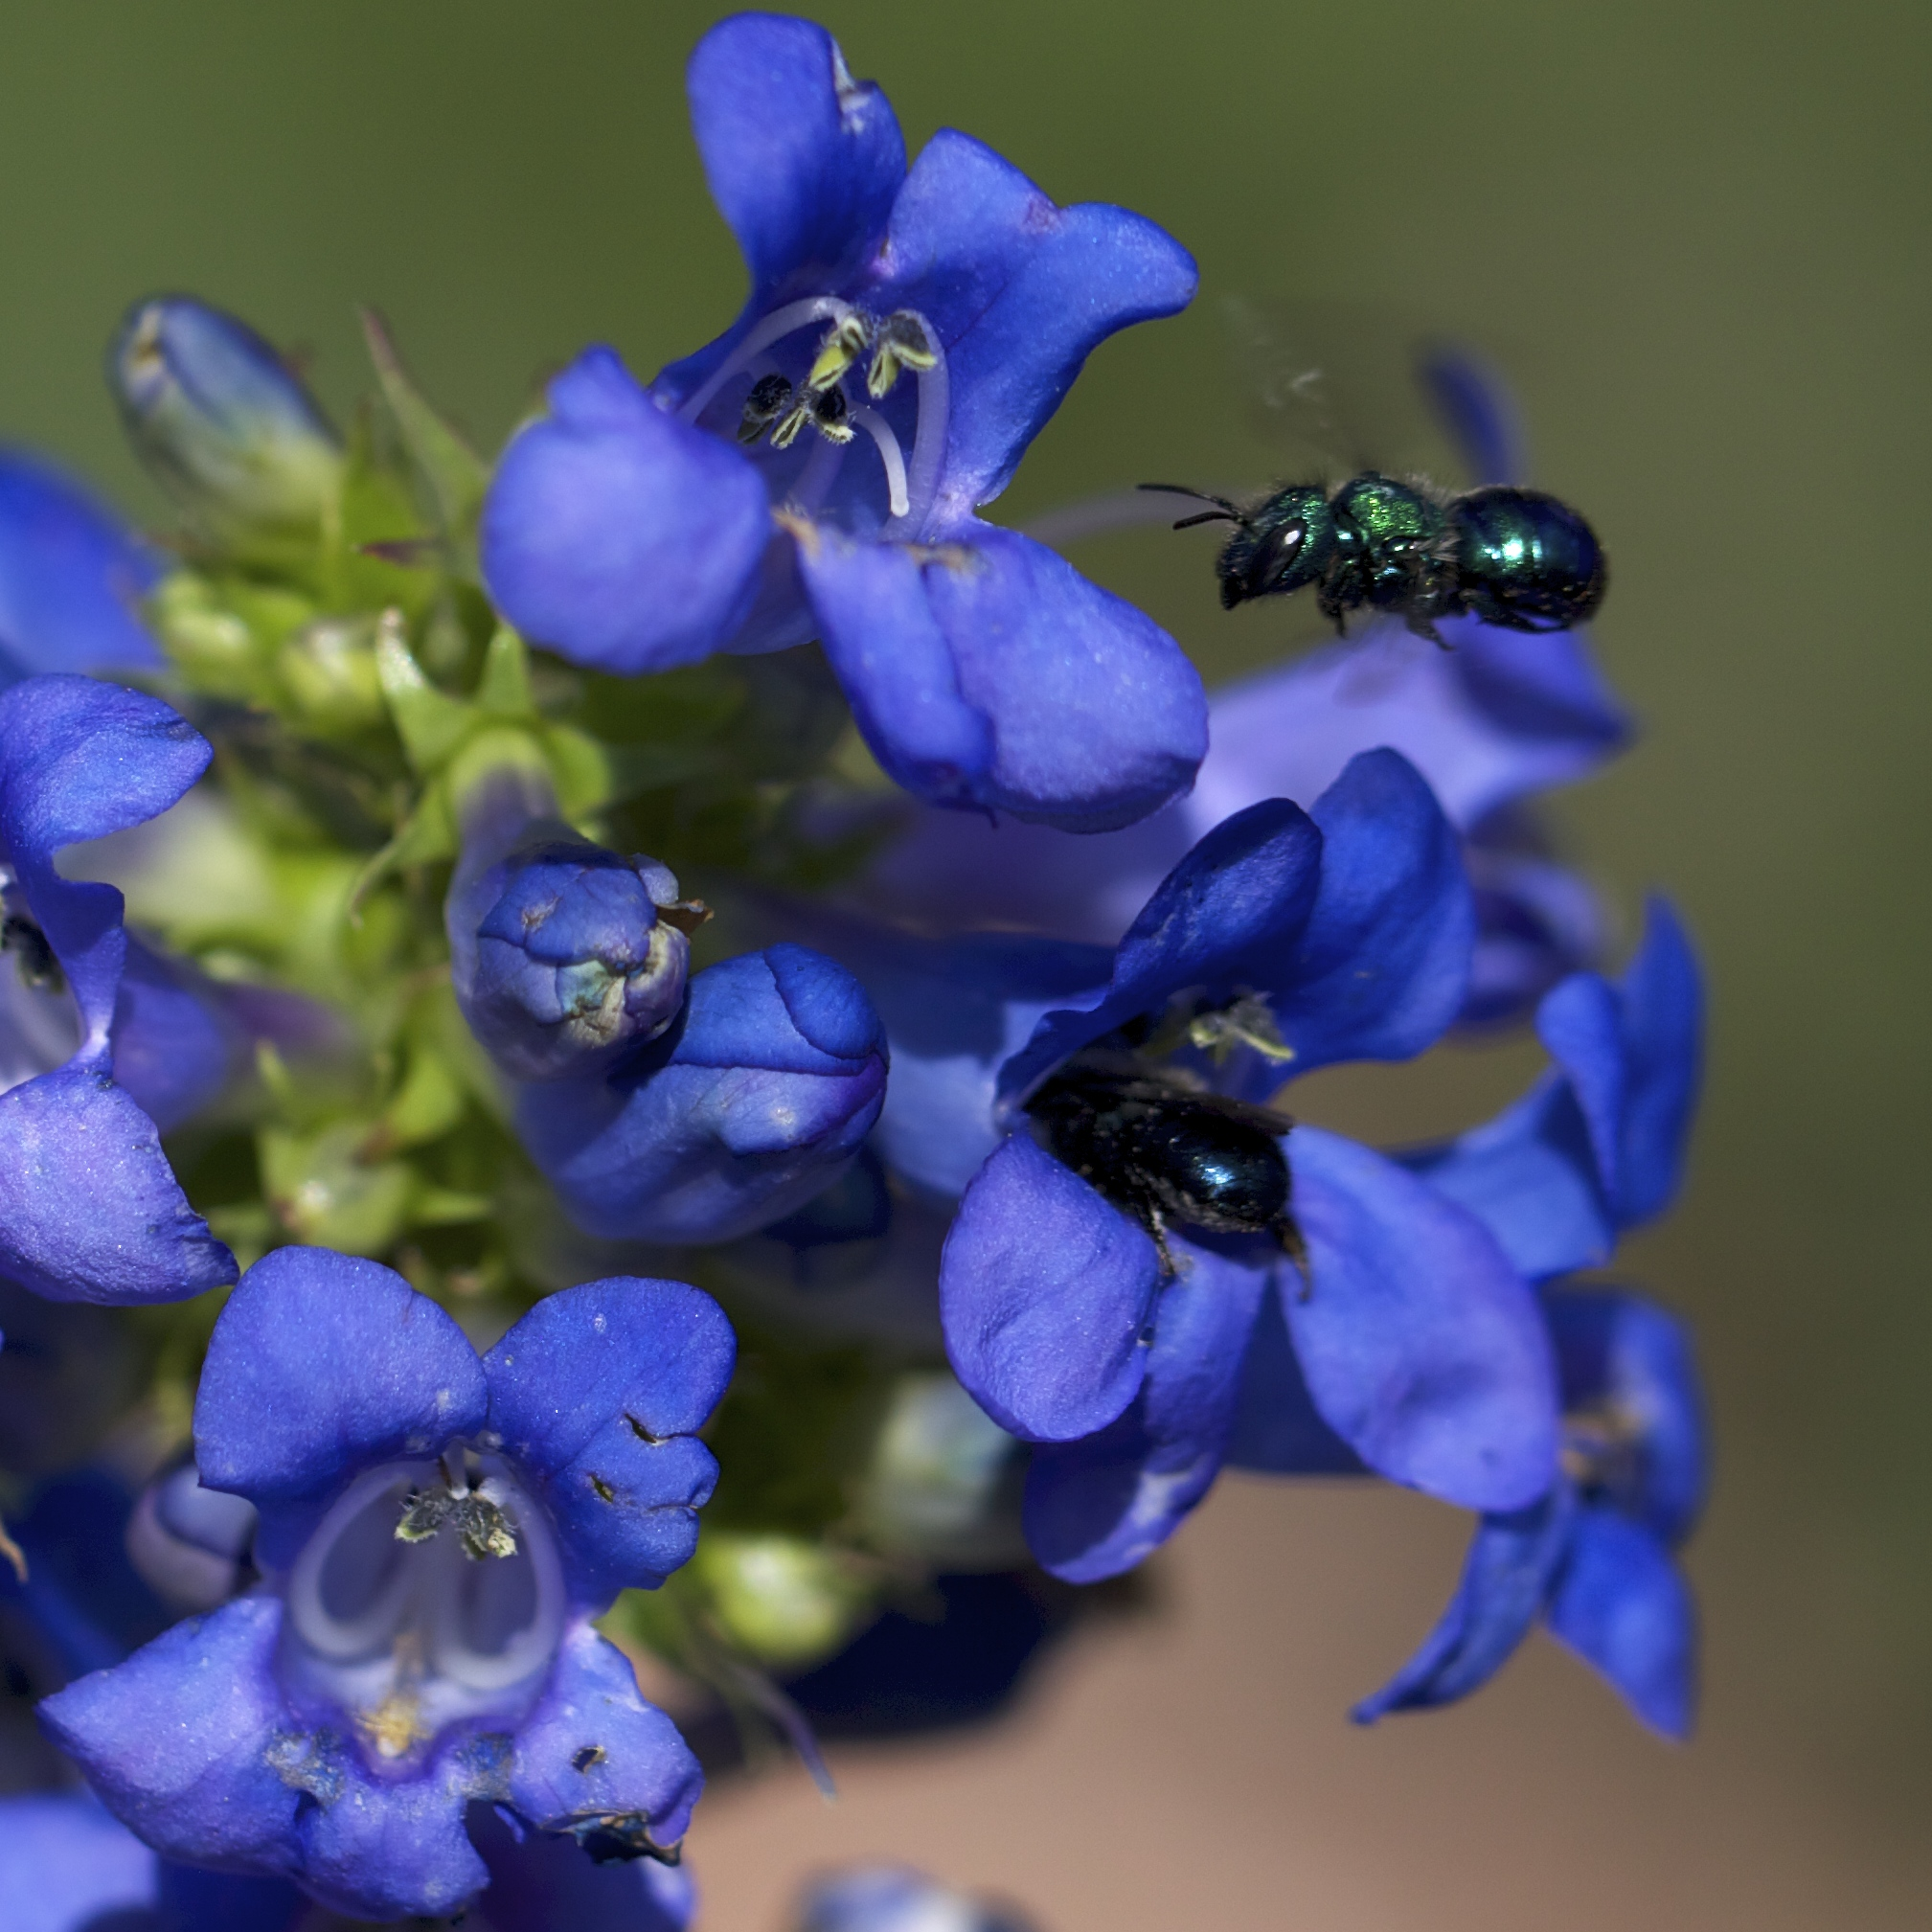 Two native Osmia, or orchard bees, enjoying the cerulean blooms of Penstemon cyananthus.